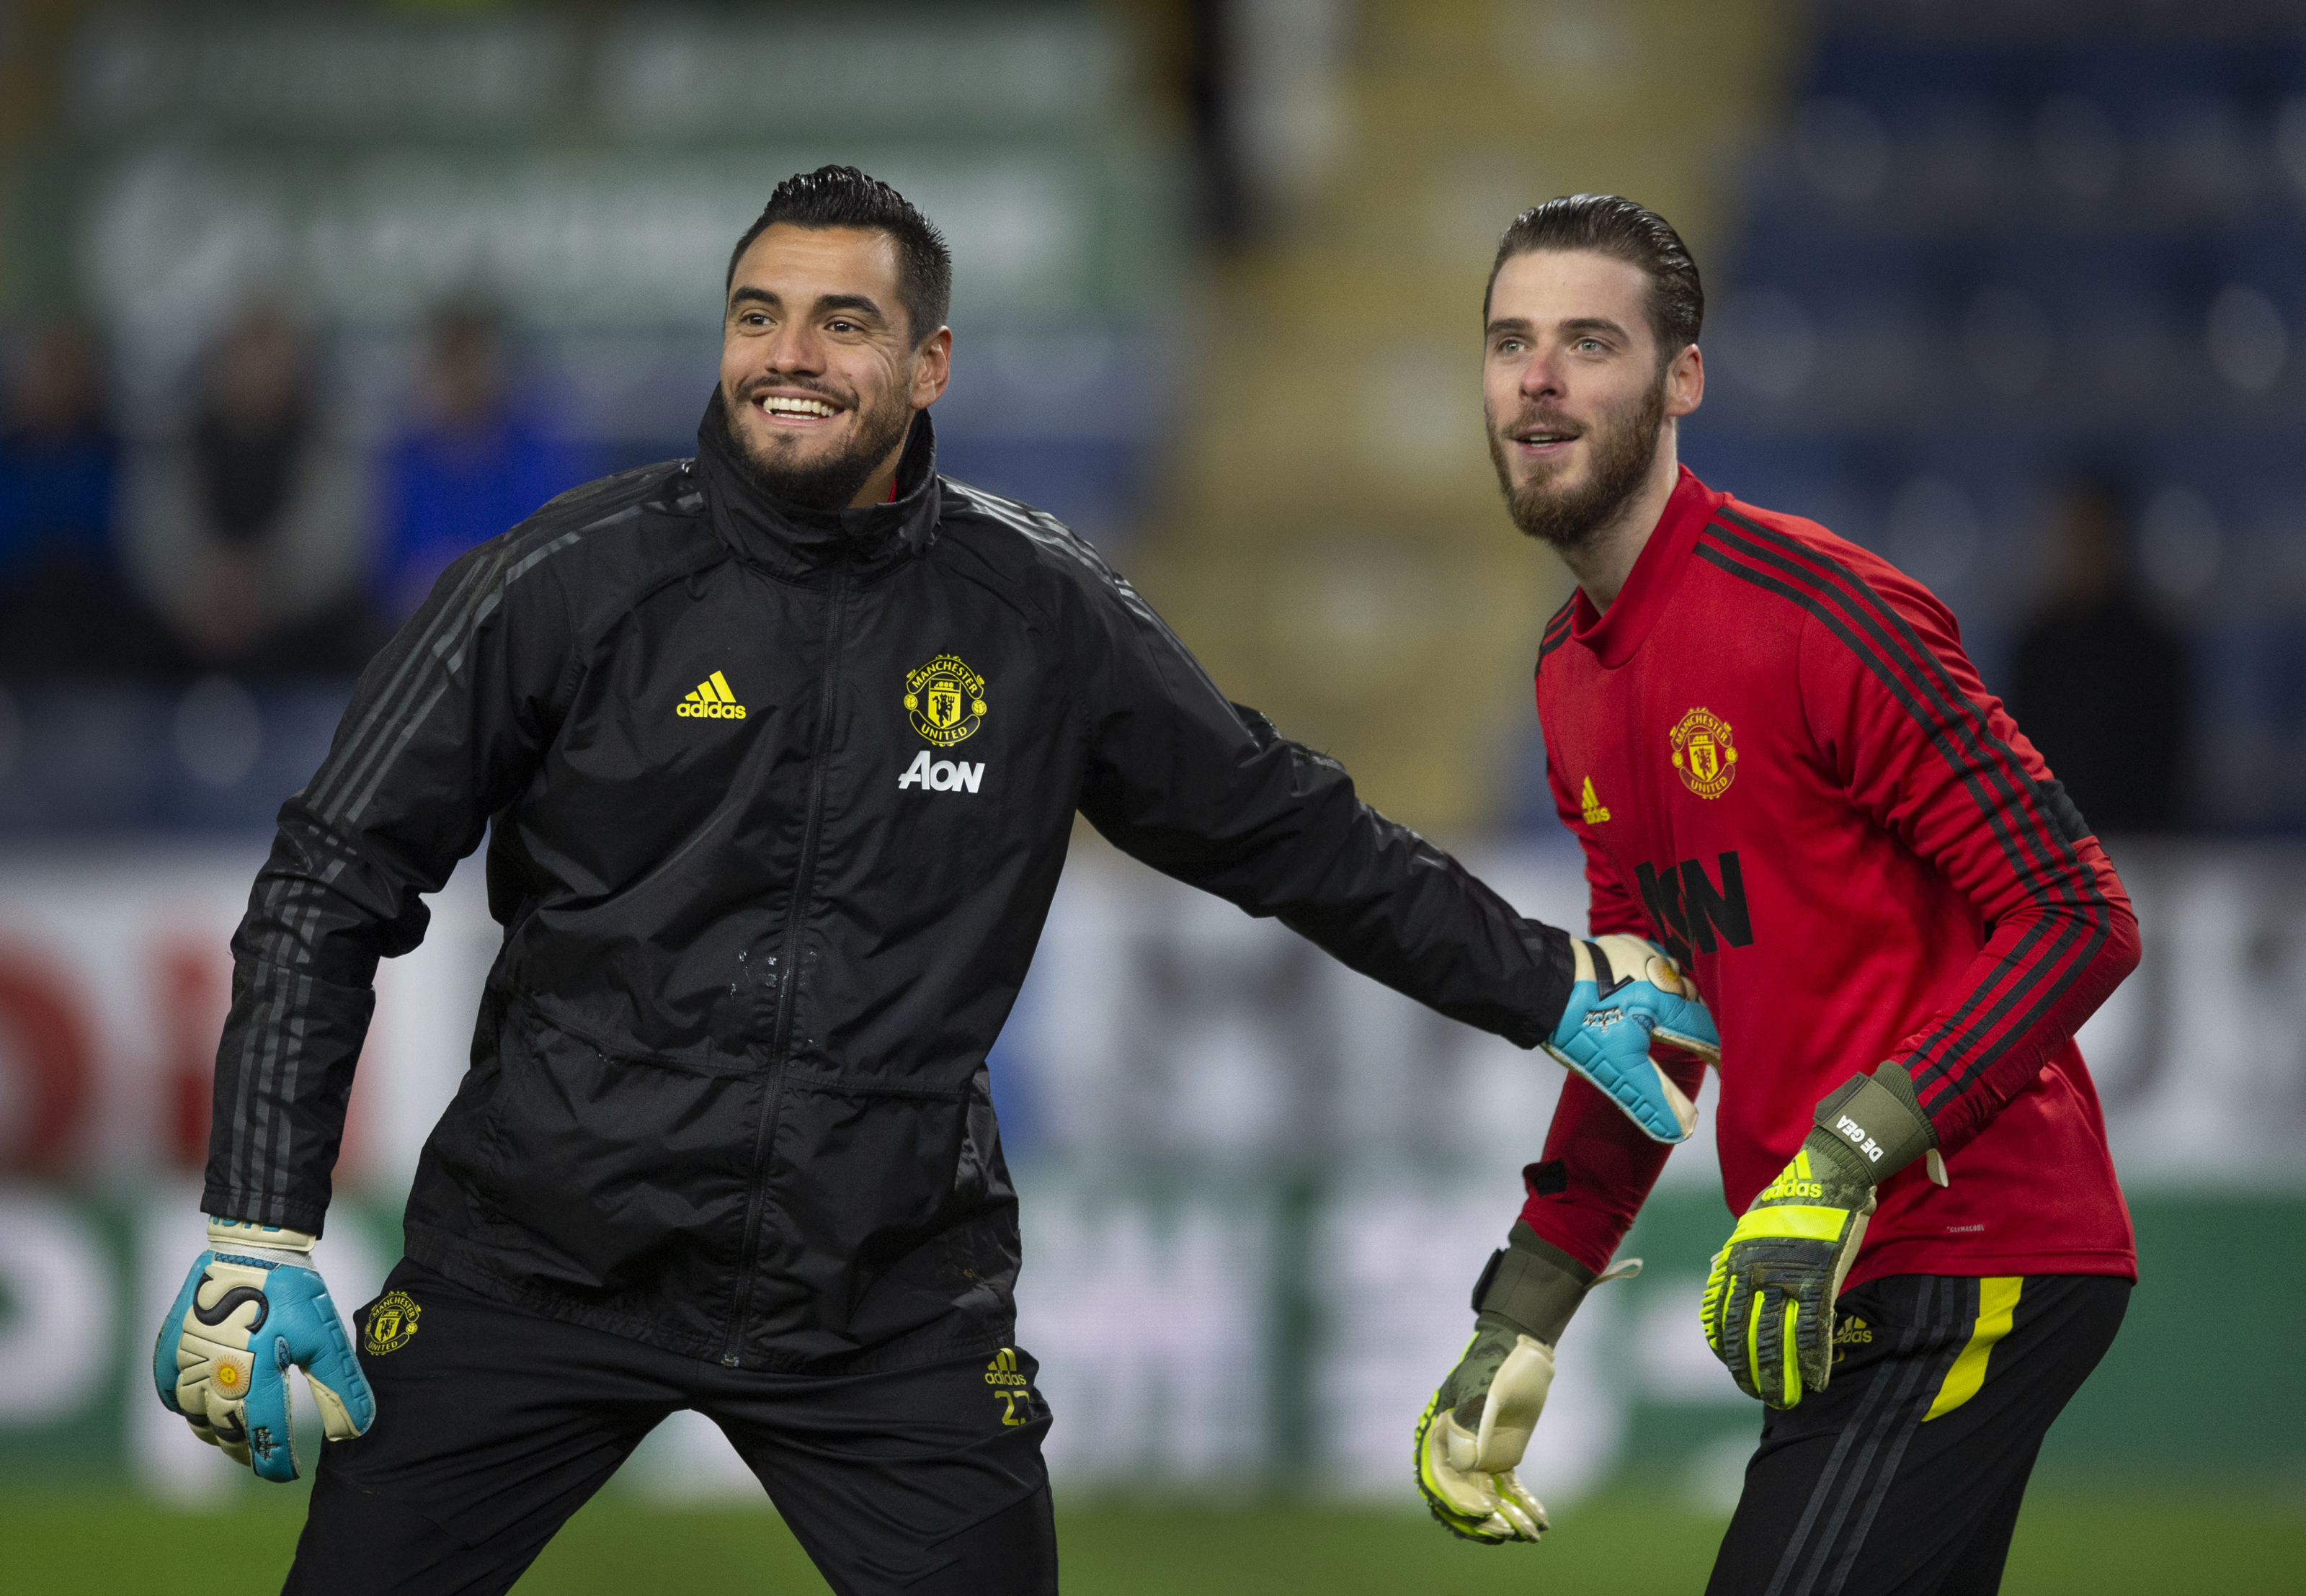 Manchester United Goalkeeper Seeking A Shock Exit From The Club